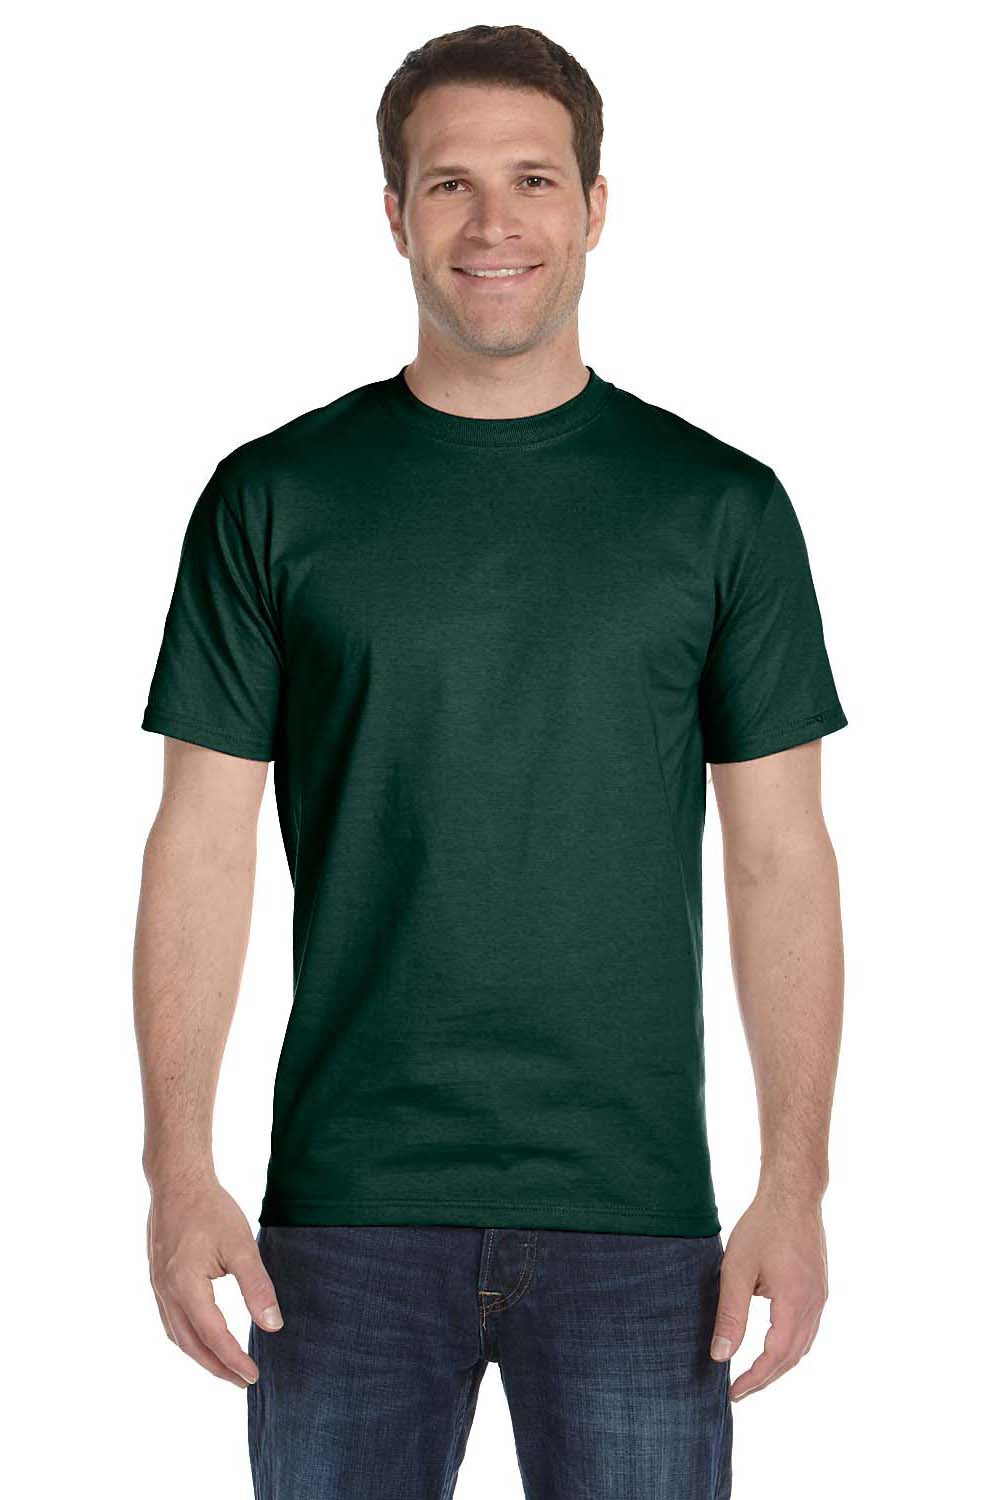 Hanes 5180 Mens Beefy-T Short Sleeve Crewneck T-Shirt Forest Green Front